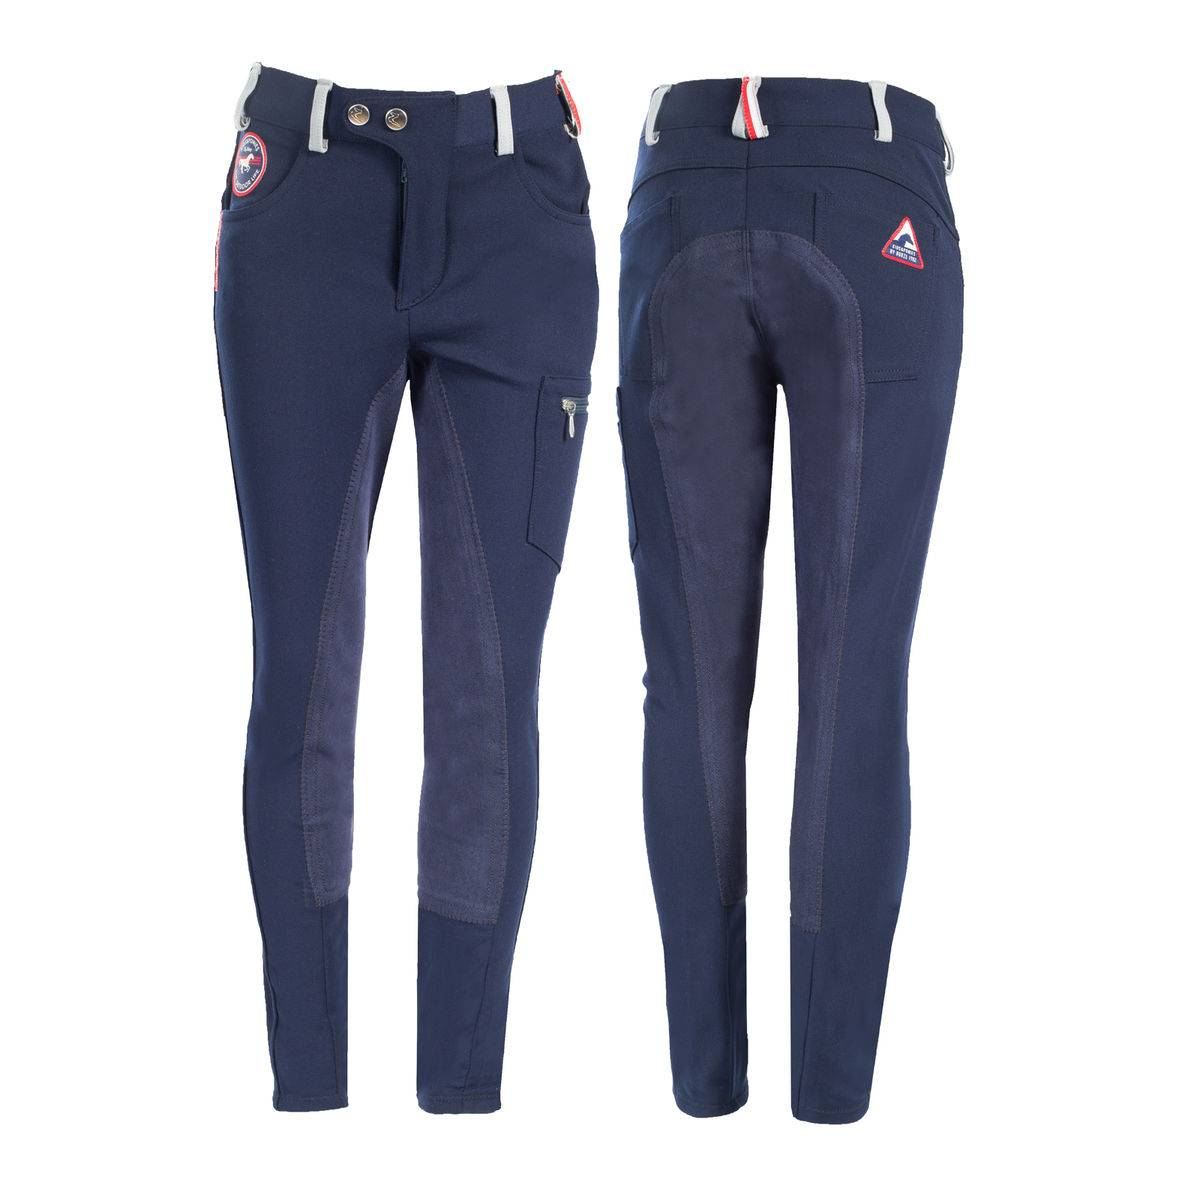 Horze Mackenzie Full Seat Cargo Breeches - Kids